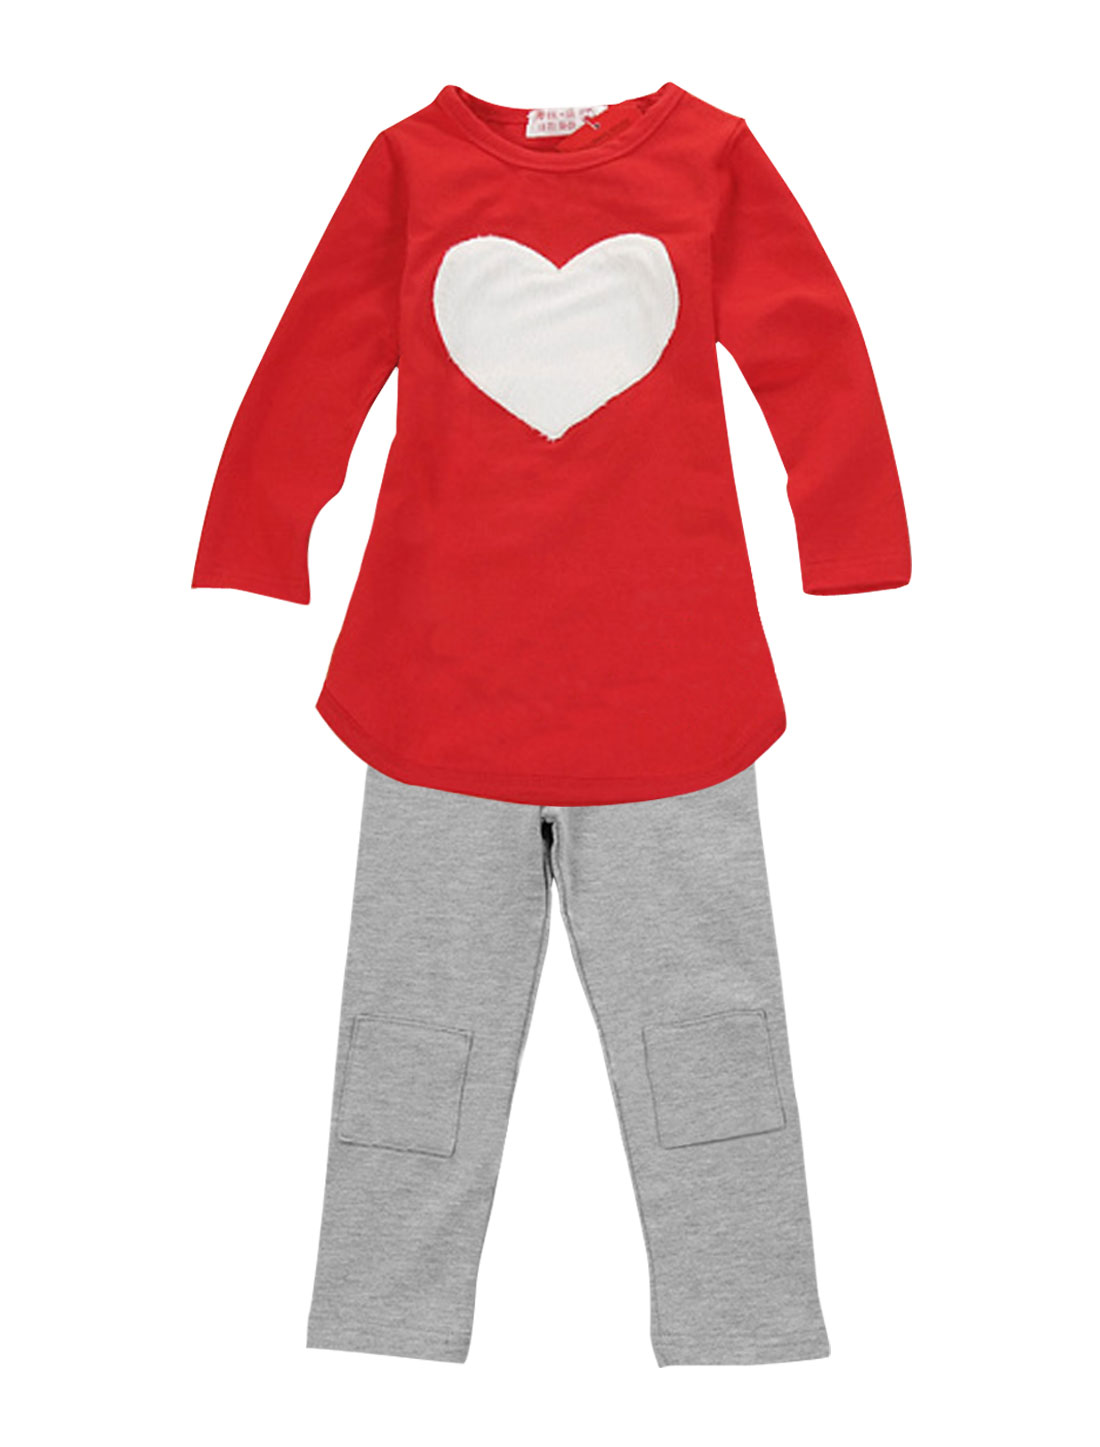 Girls Heart Shape Panel Top w Elastic Waist Pants 3-Pieces Sets Red Gray 5